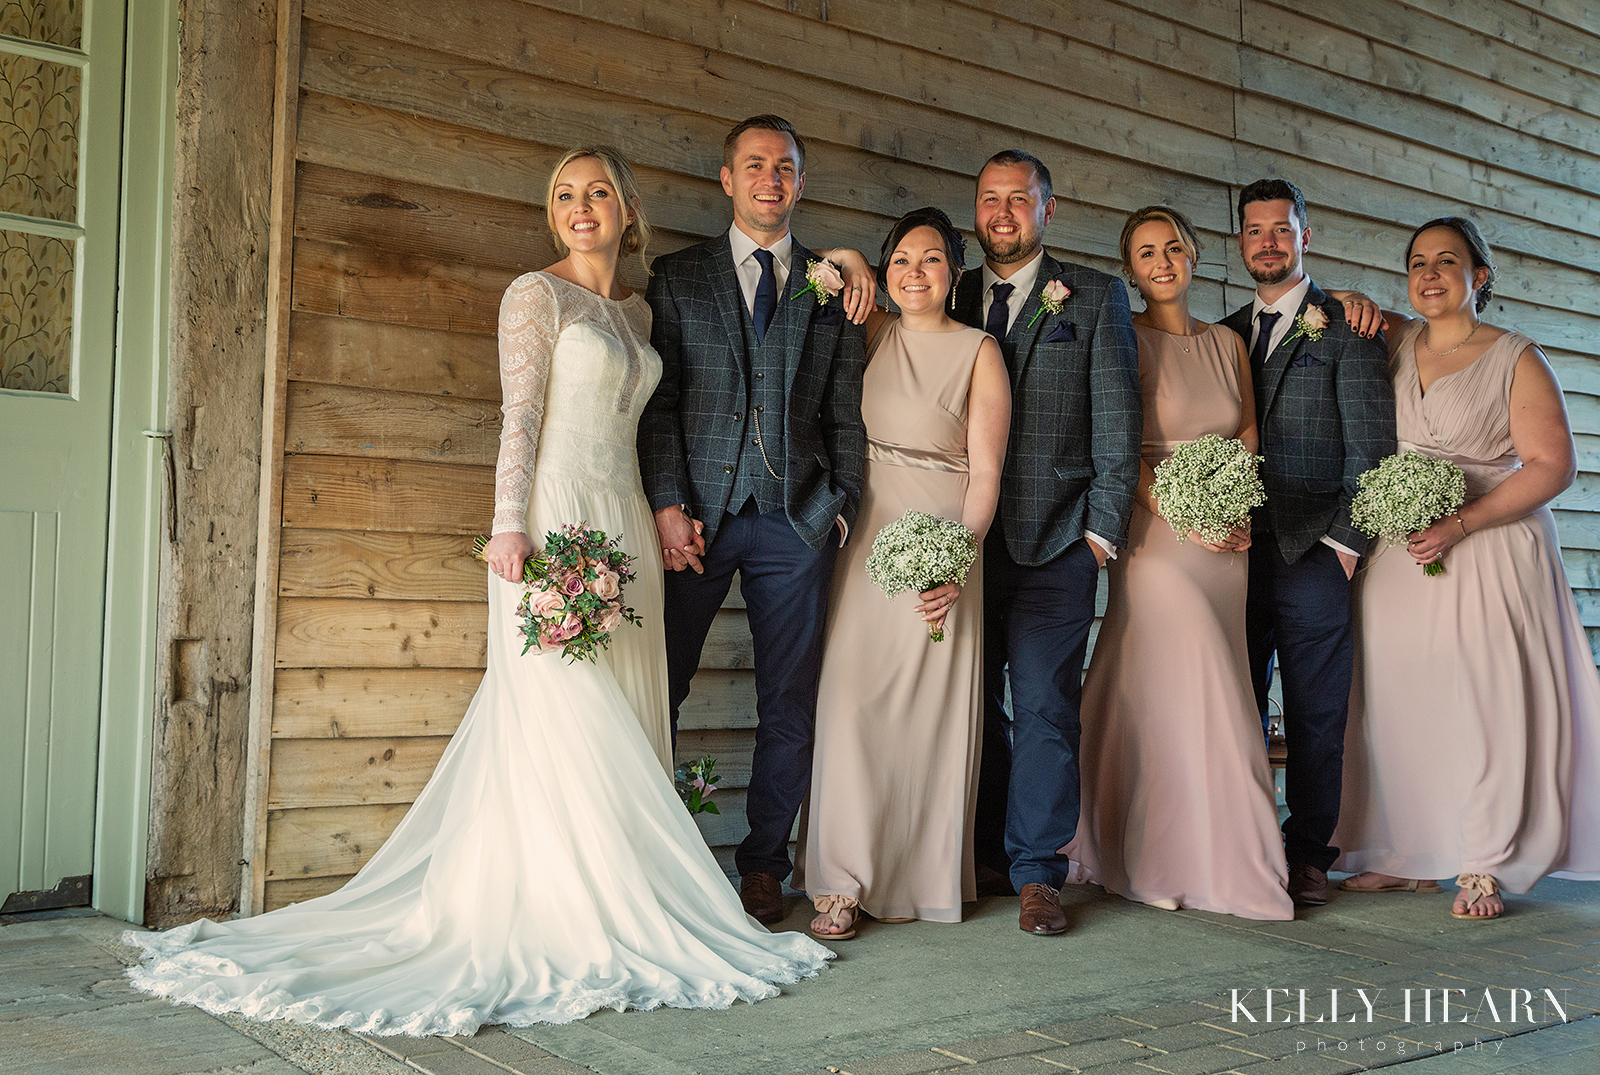 WALM_bridal-party-against-wooden-slats.jpg#asset:2476